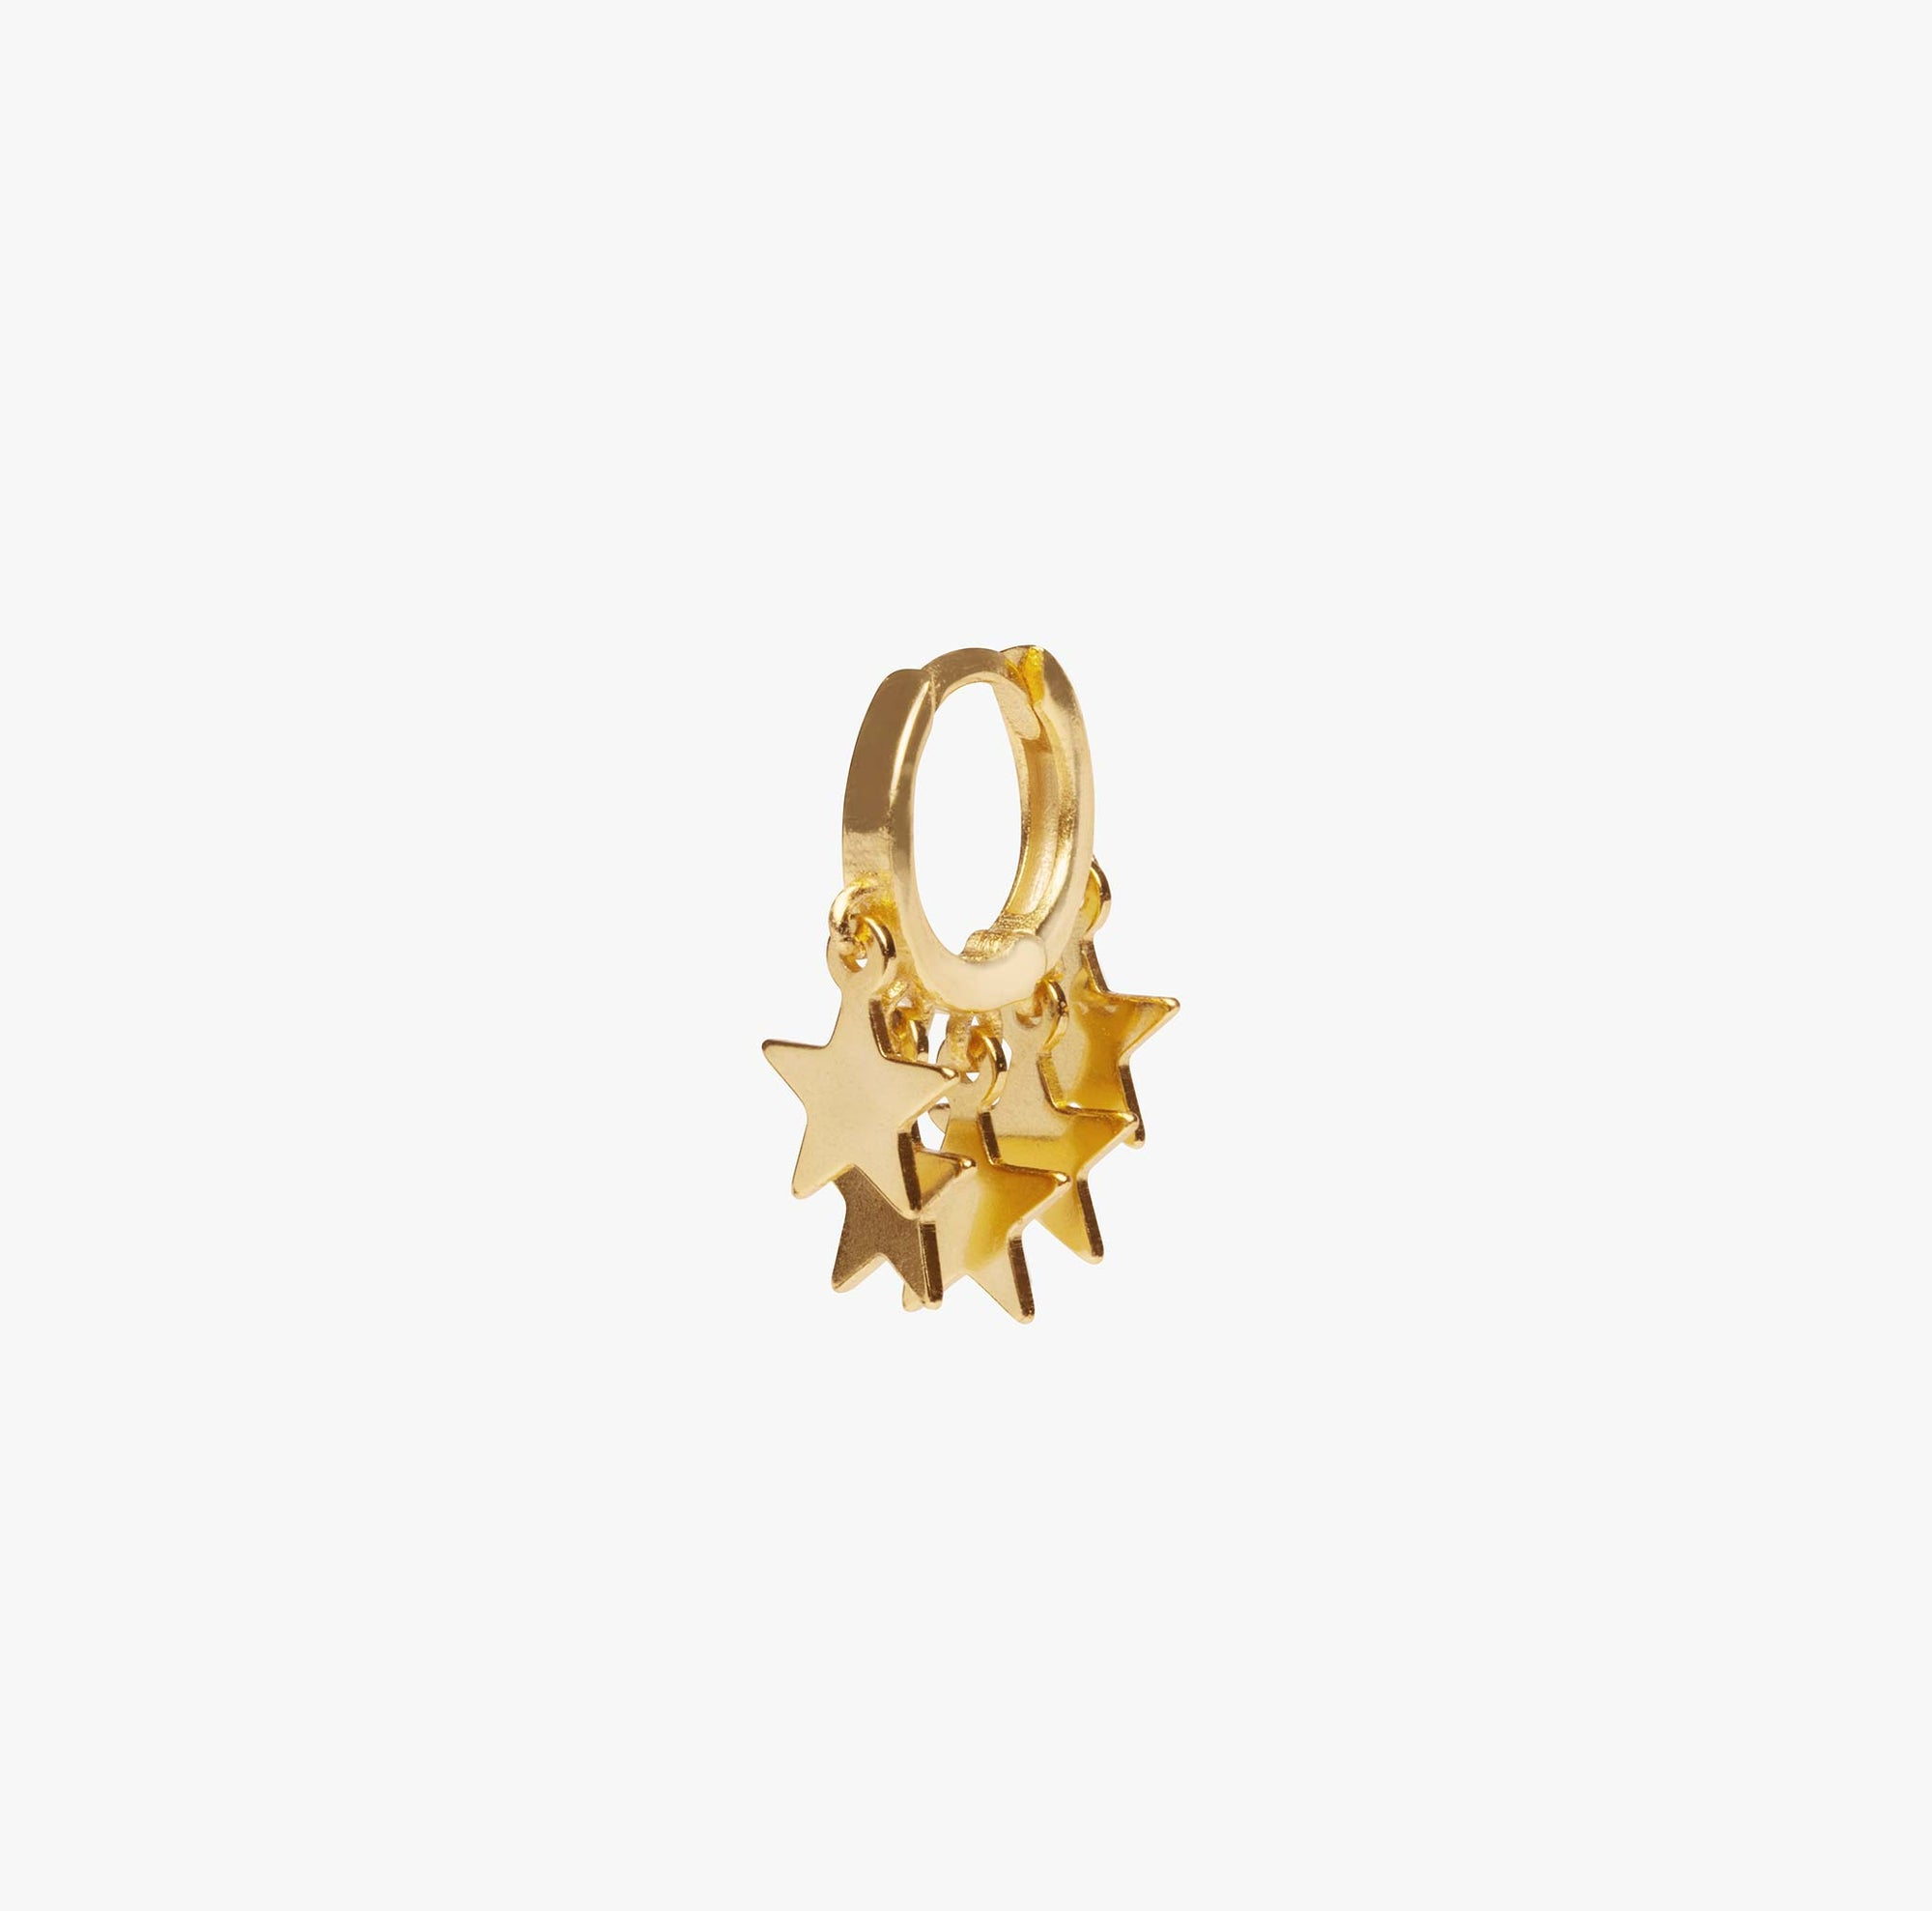 Gold fringed huggie with fringe in the shape of stars.